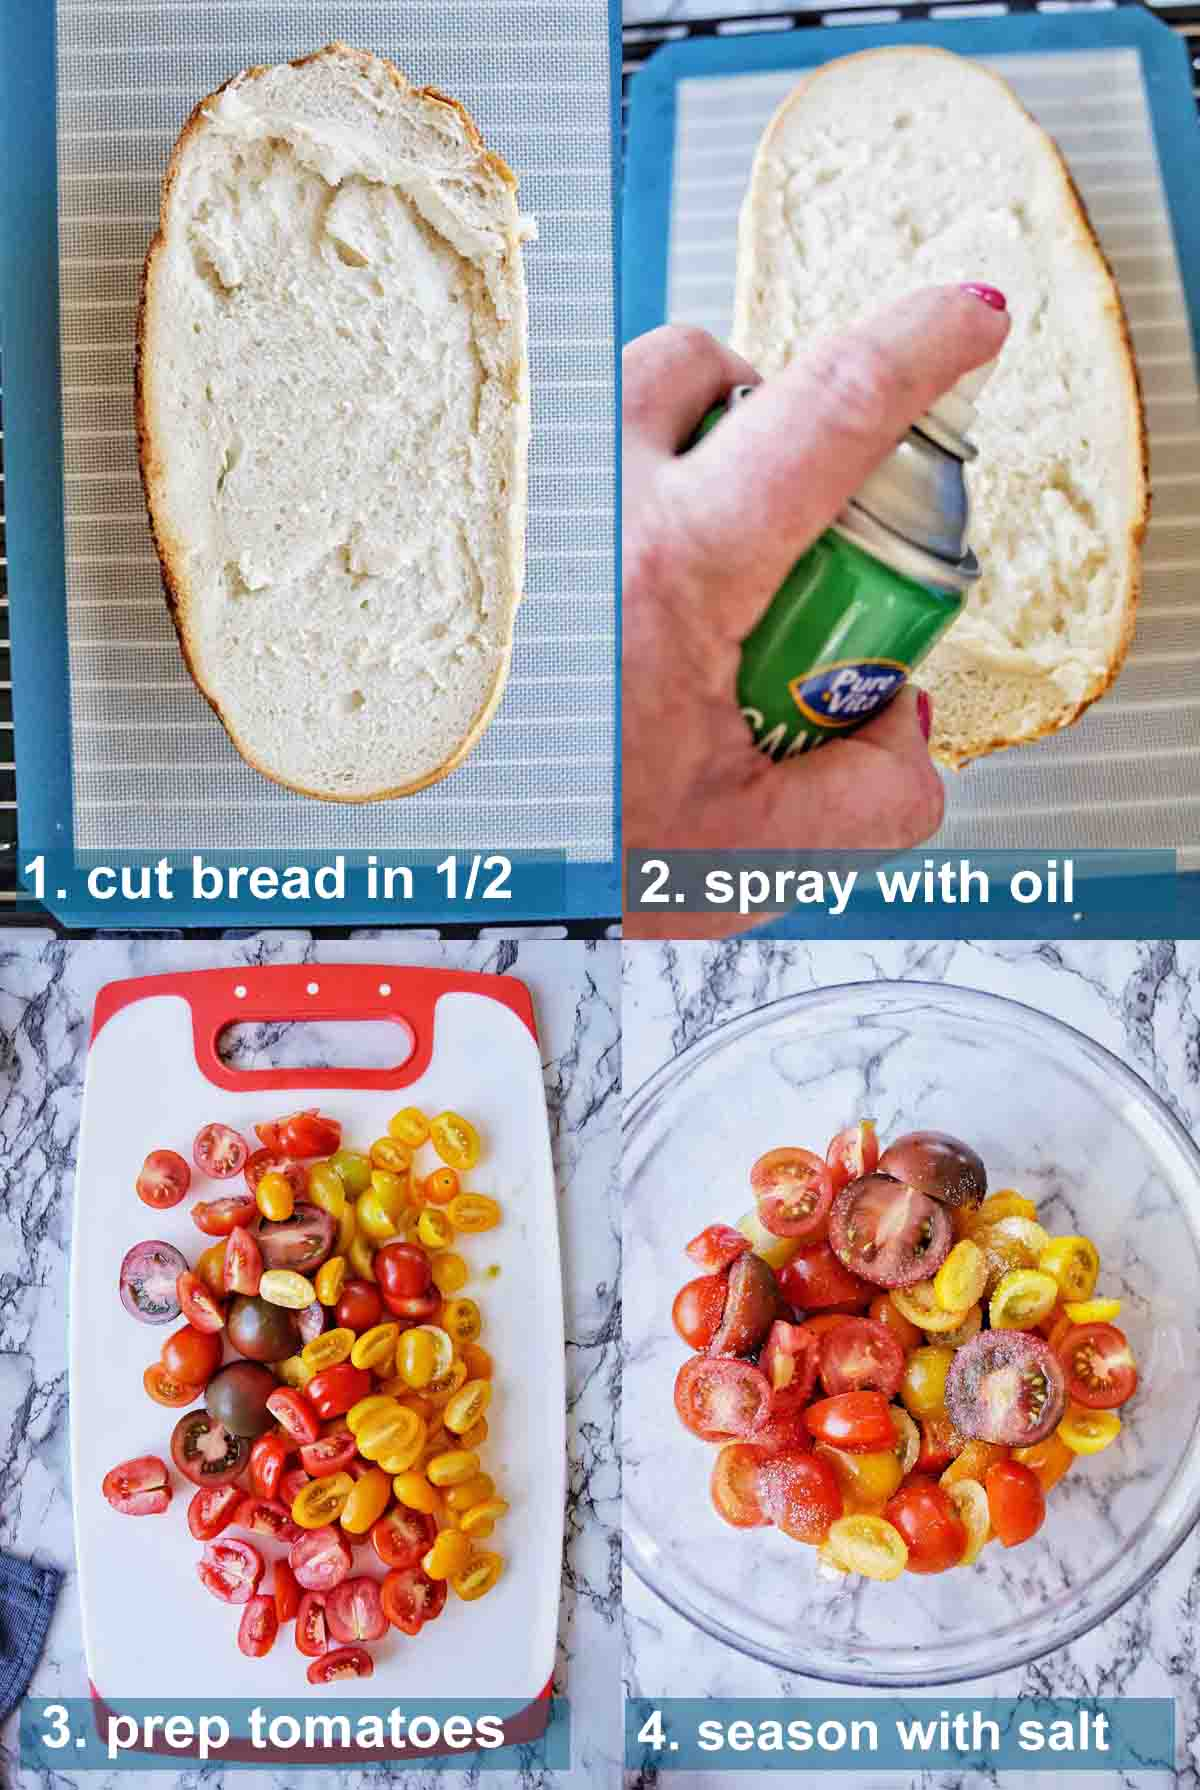 Panzanella Salad method 1 to 4 with text labels